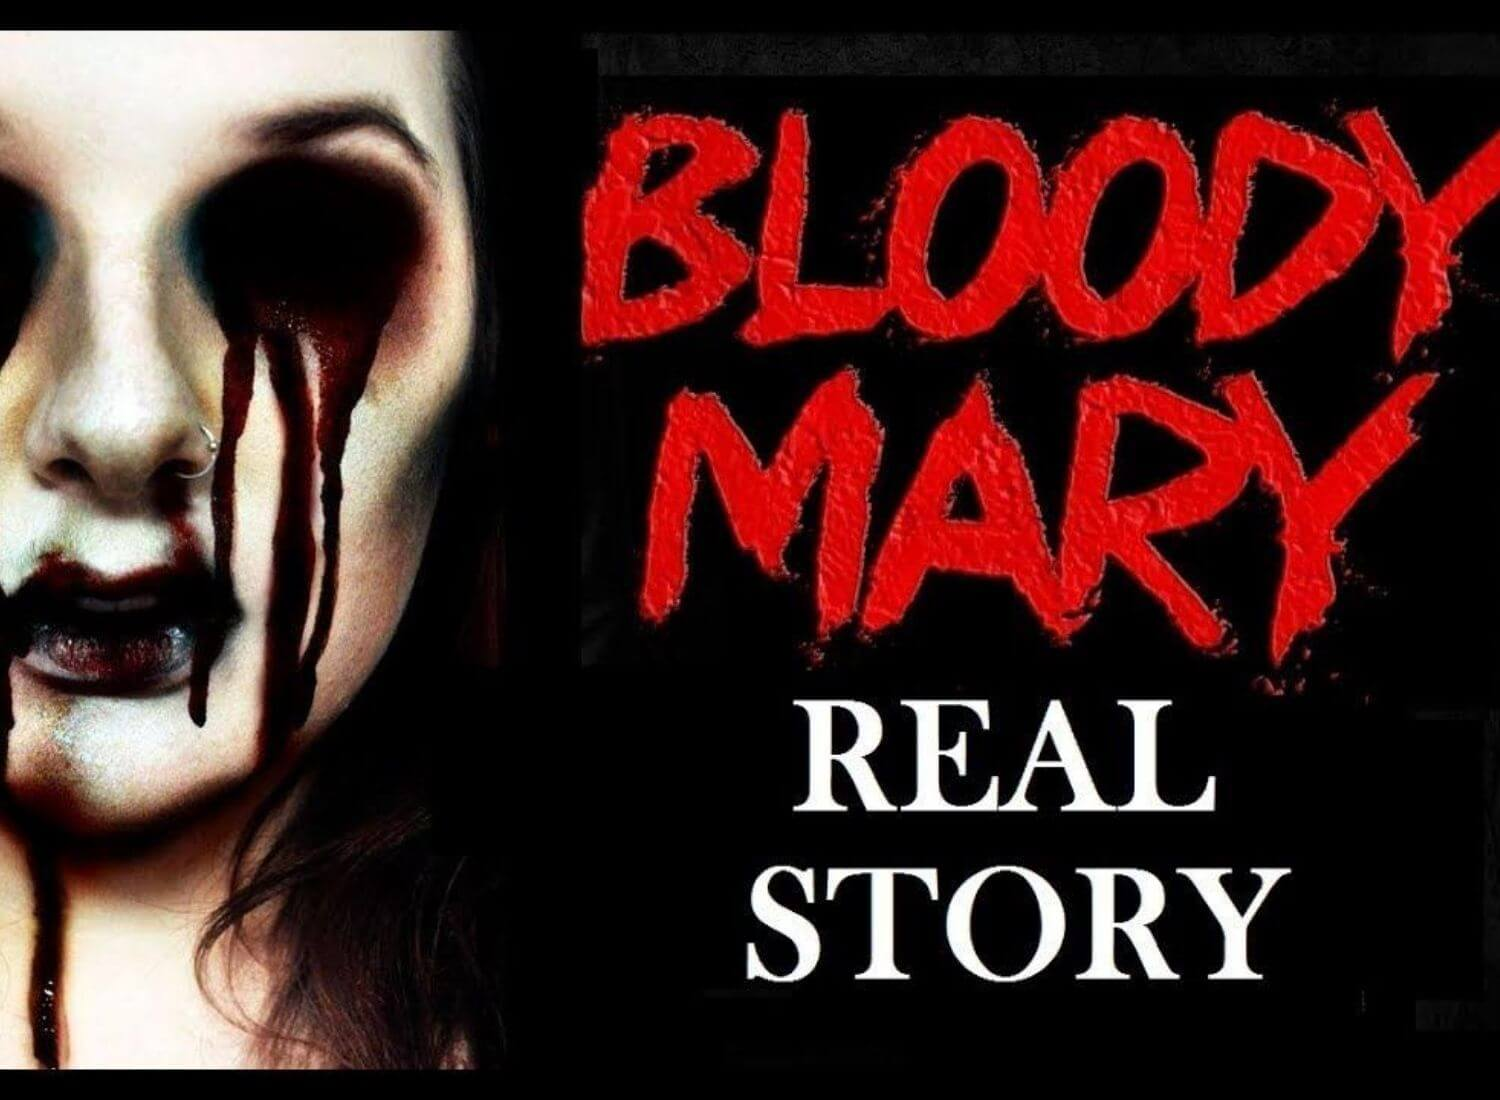 real bloody mary